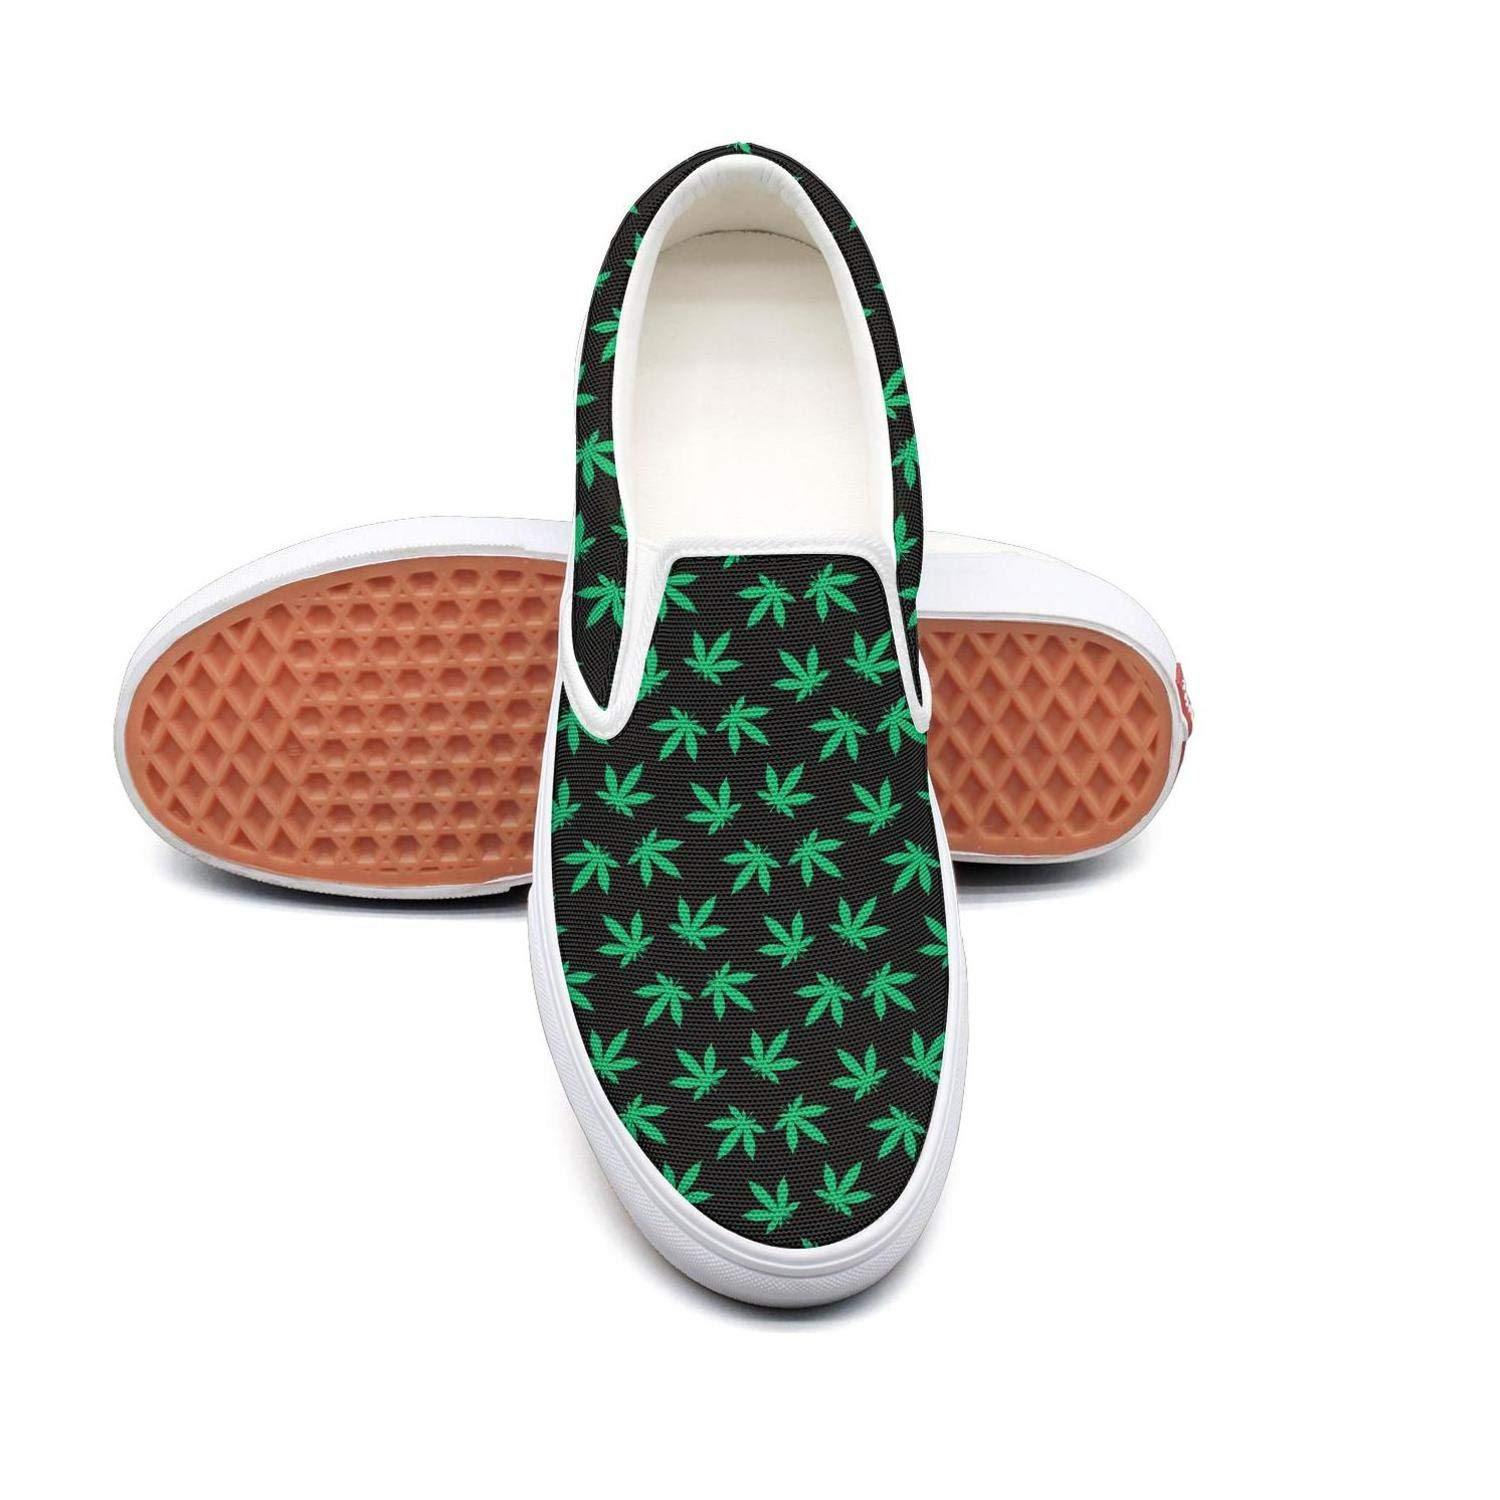 Sernfinjdr Women's Cannabis Leaf Fashion Casual Canvas Slip on Shoes Designer Cycling Sneaker Shoes